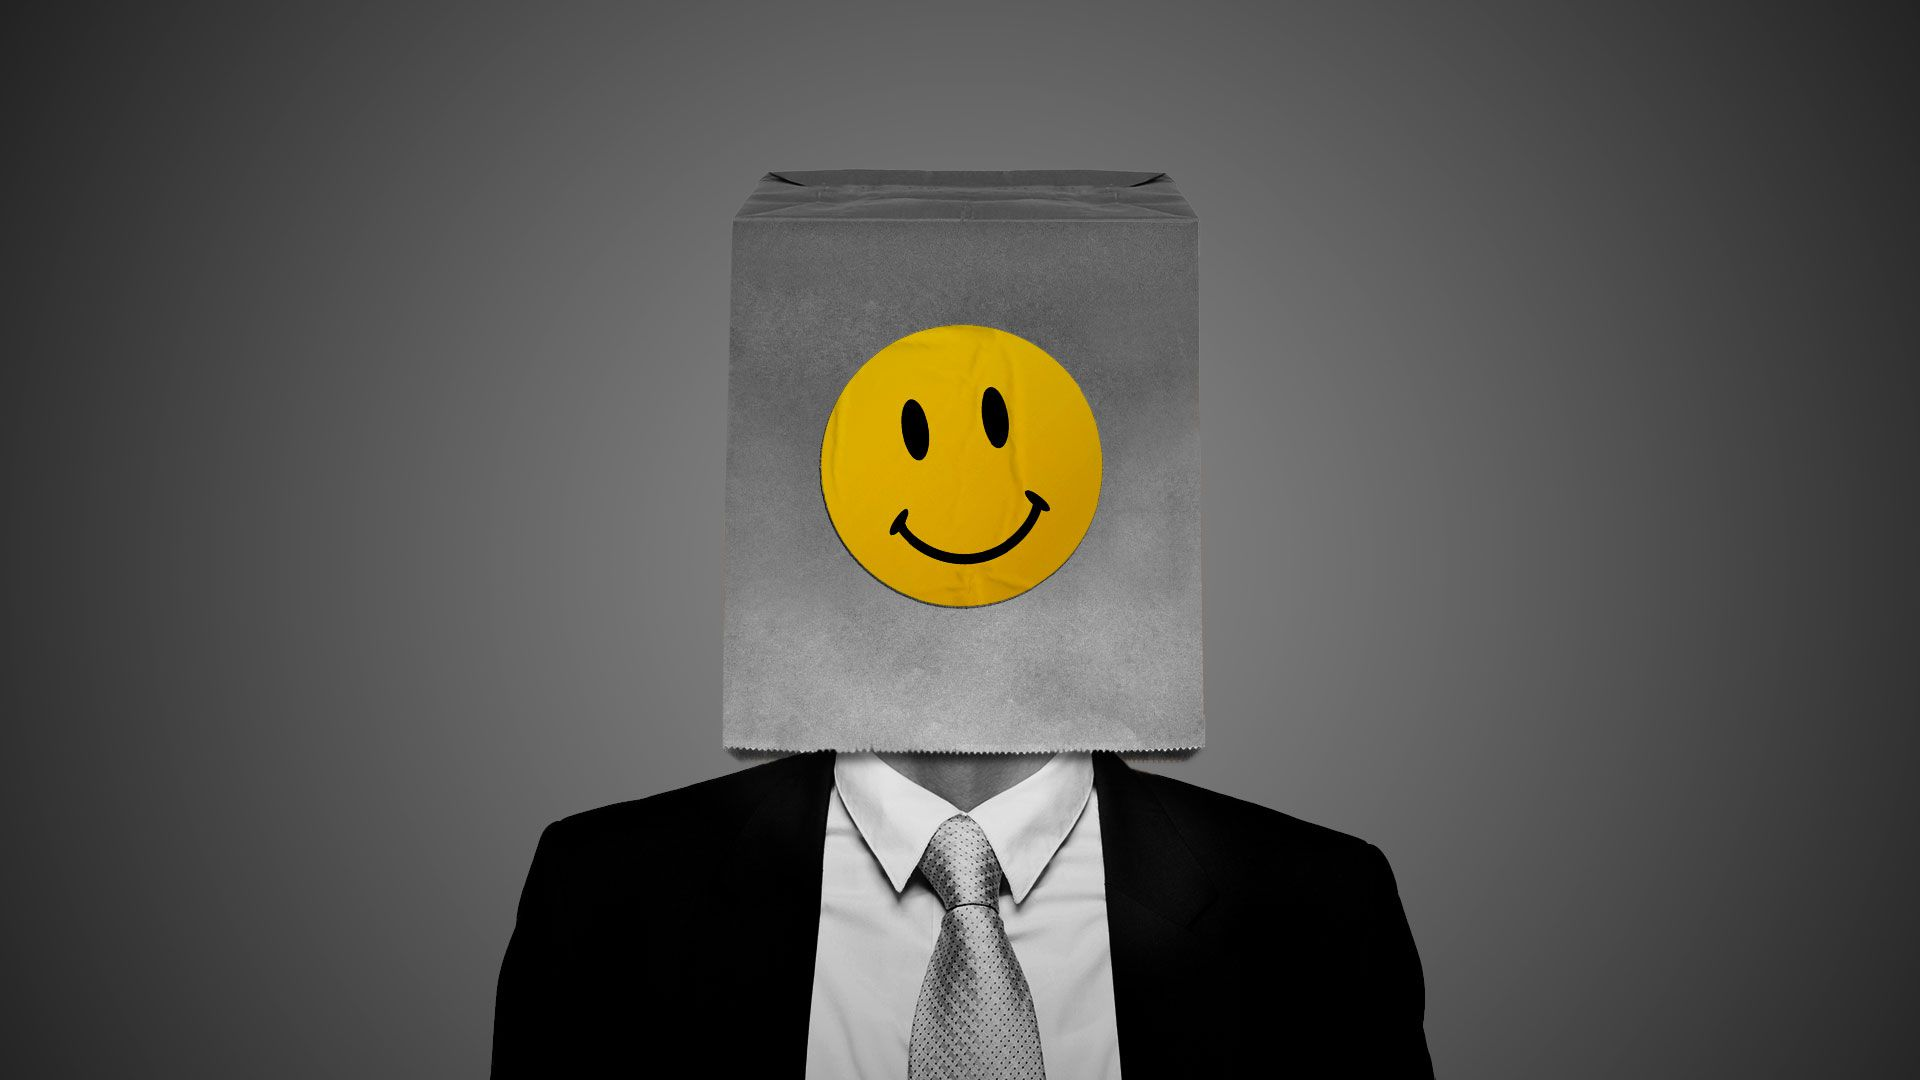 Illustration of a paper bag with a smiley face sticker over a business person's head.